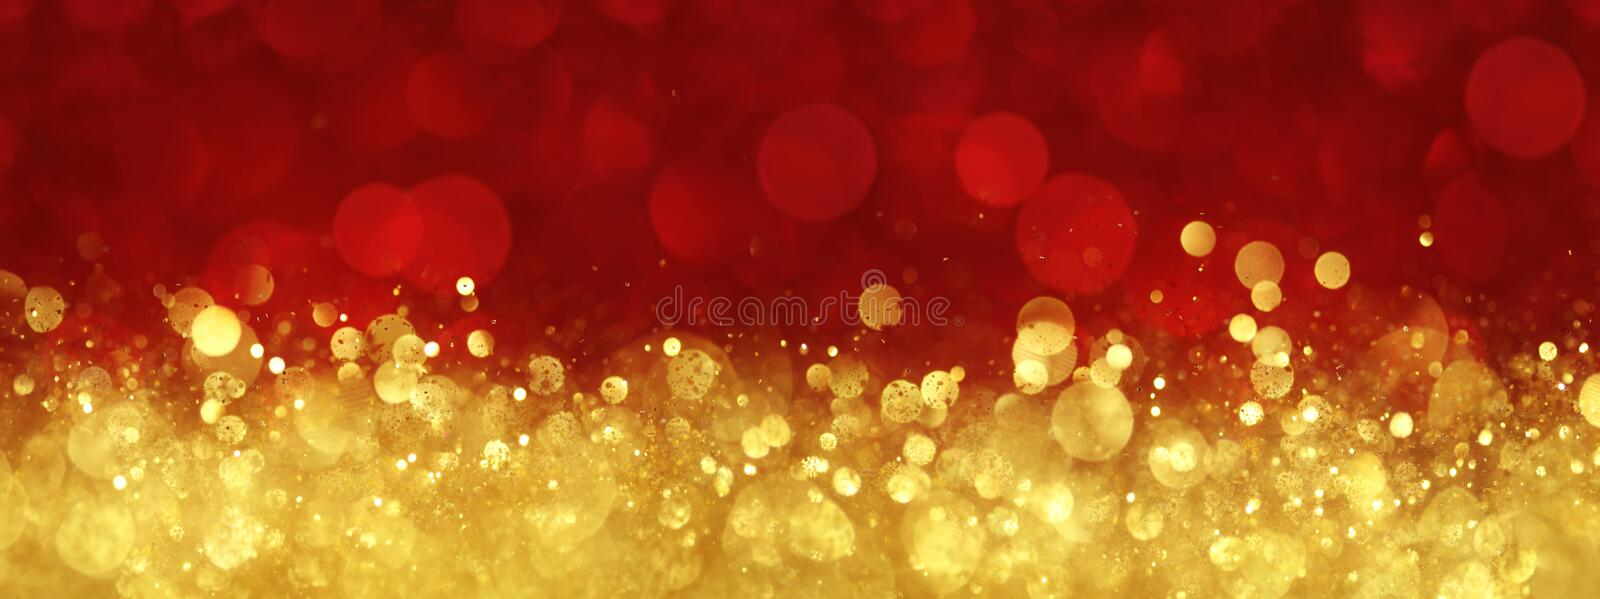 Red and gold abstract Christmas background. Red and gold abstract Christmas bokeh background royalty free stock photography